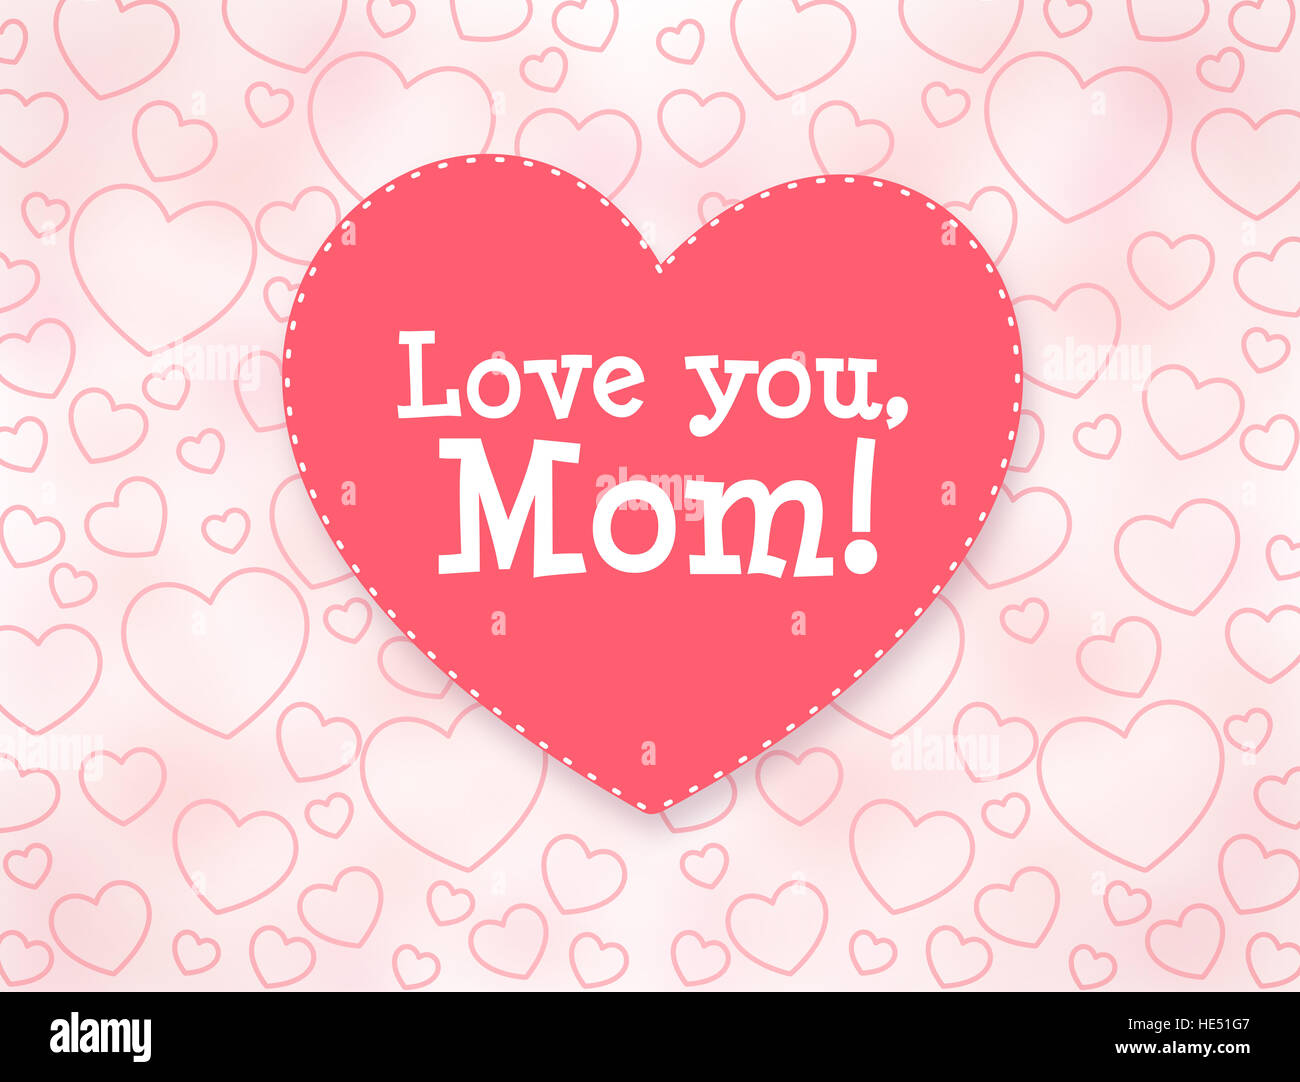 Love You Mom Mothers Day Greeting Card With Hearts Stock Photo